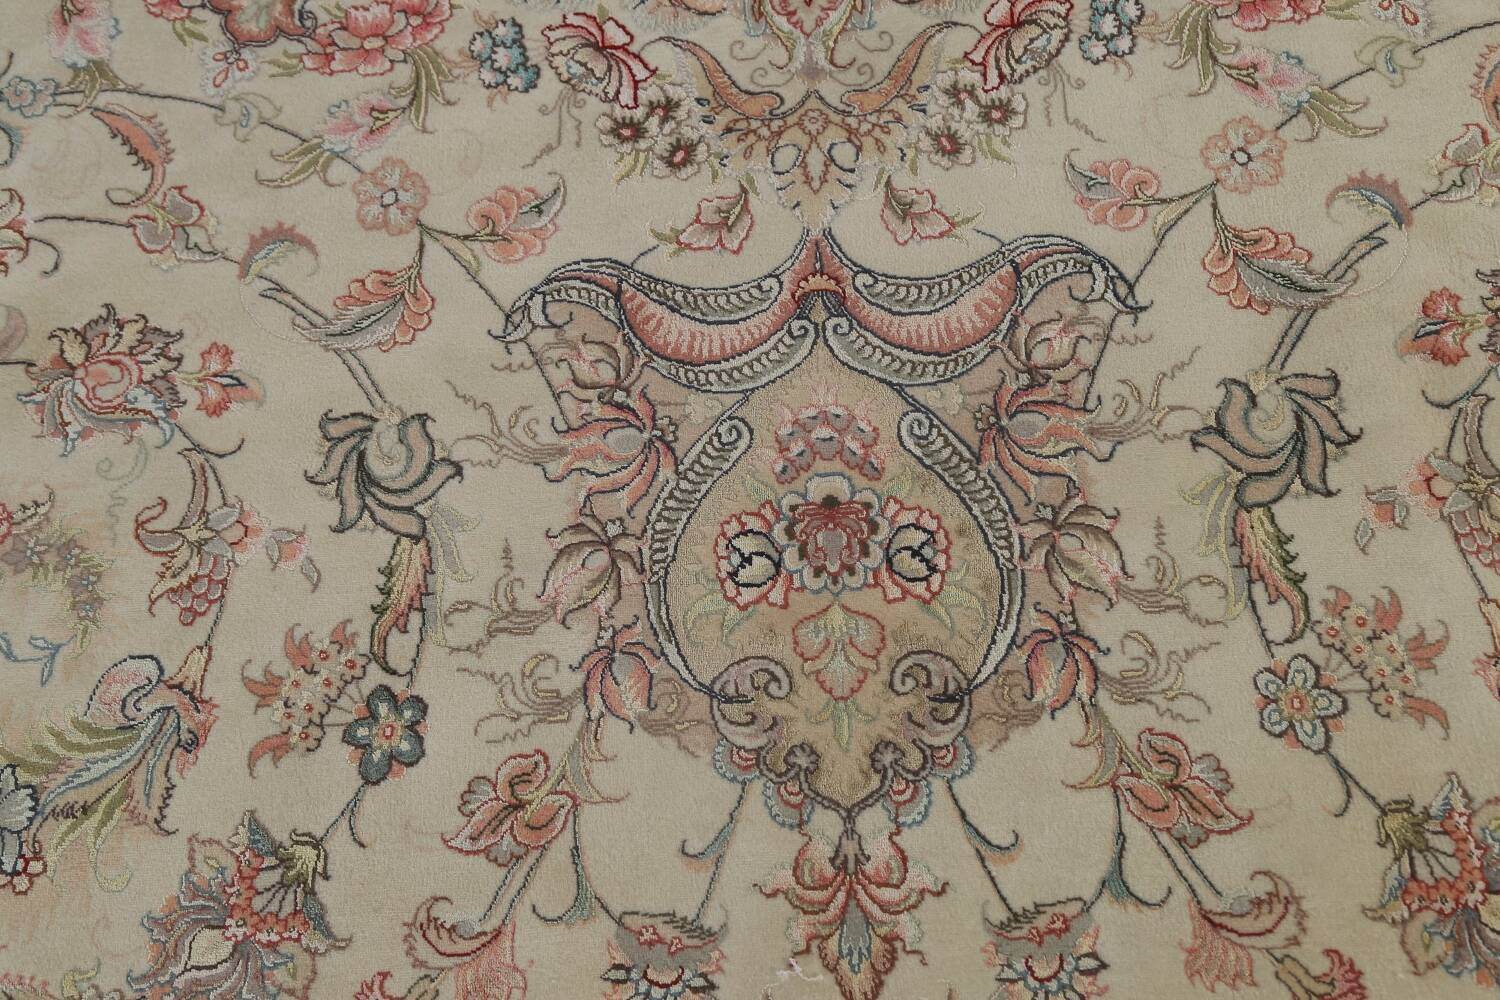 100% Vegetable Dye Floral Tabriz Persian Area Rug 22x23 Round image 15